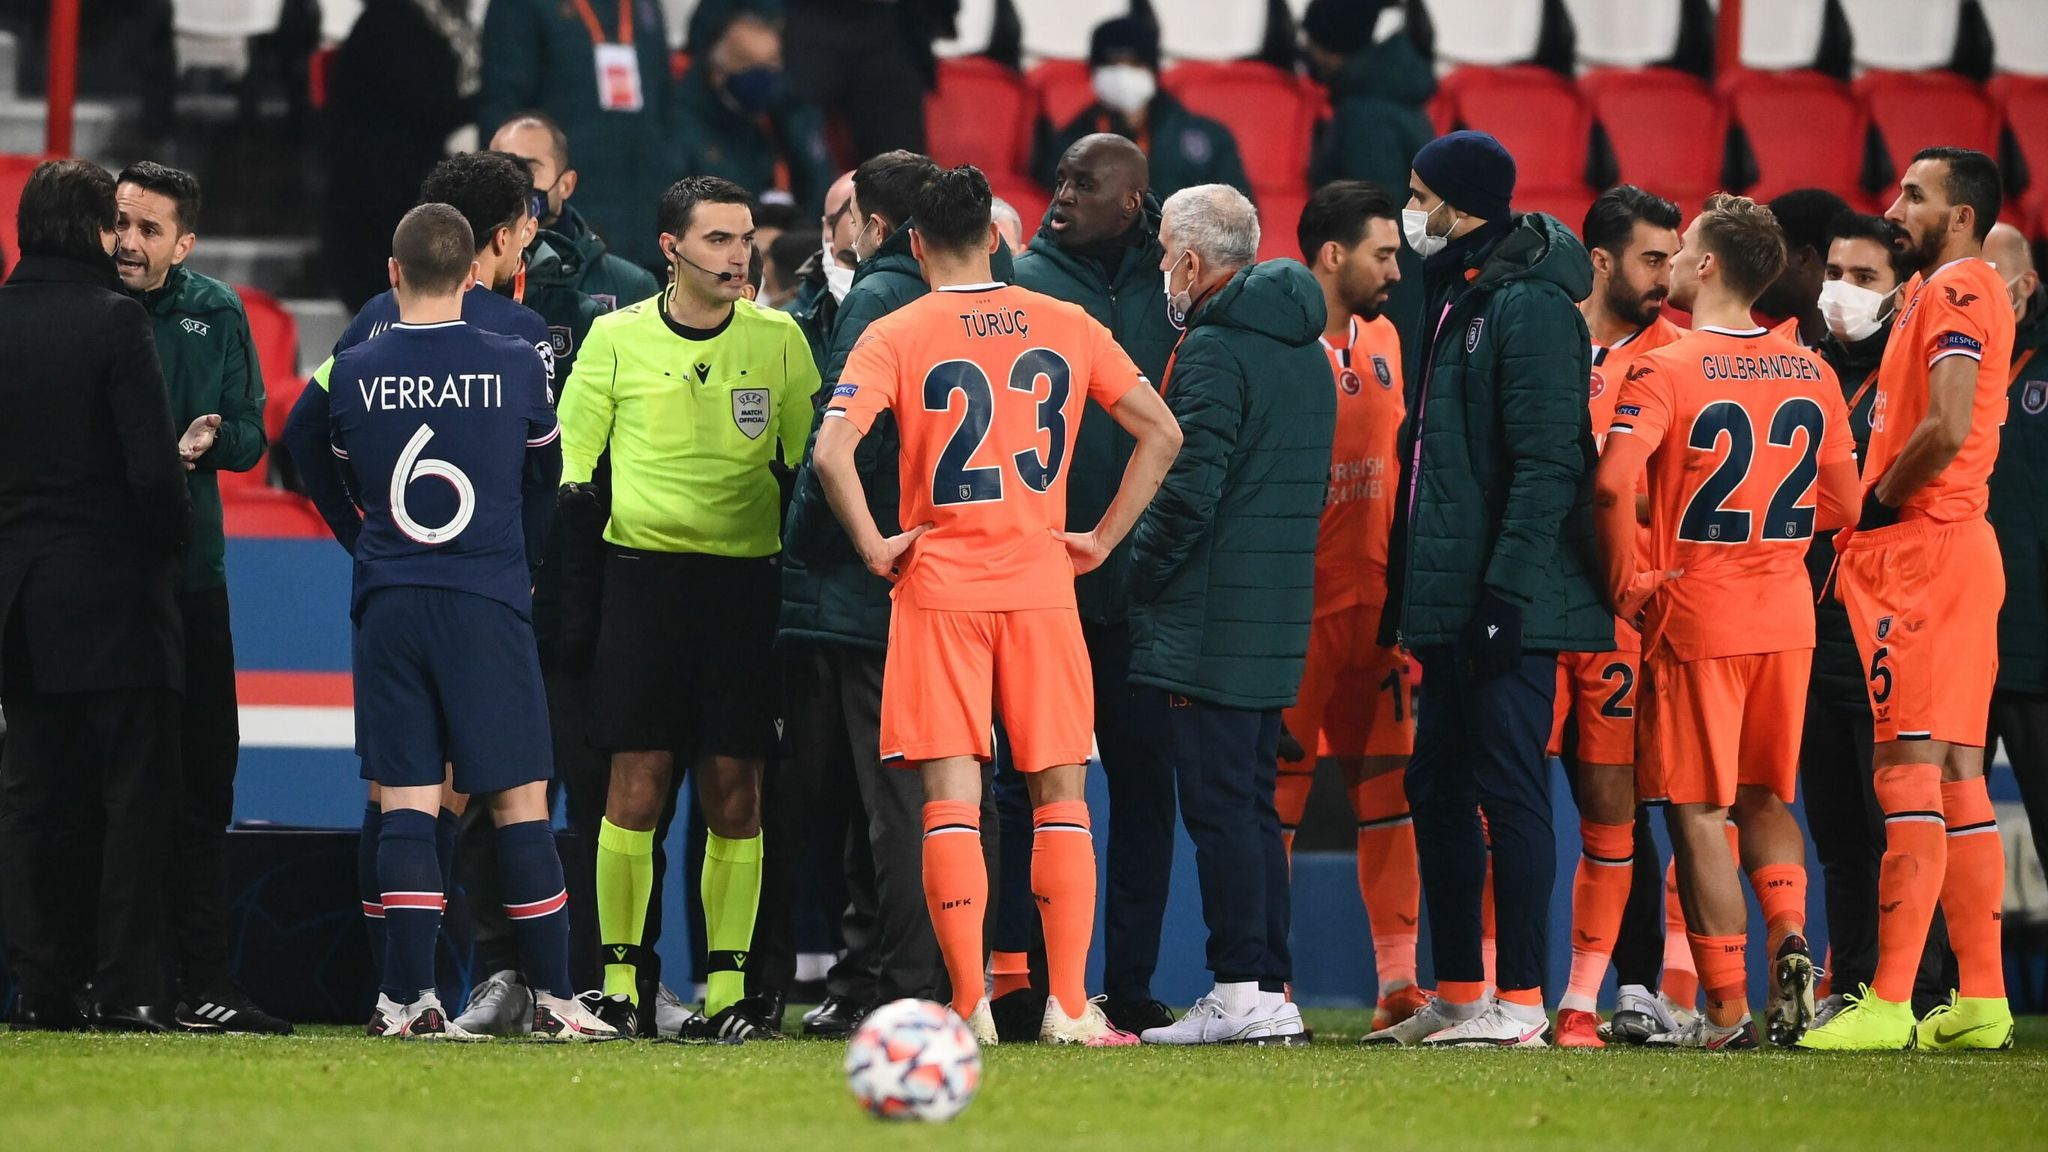 Champions League Psg Vs Basaksehir Suspended After Alleged Racist Slur By Match Official World News Sky News